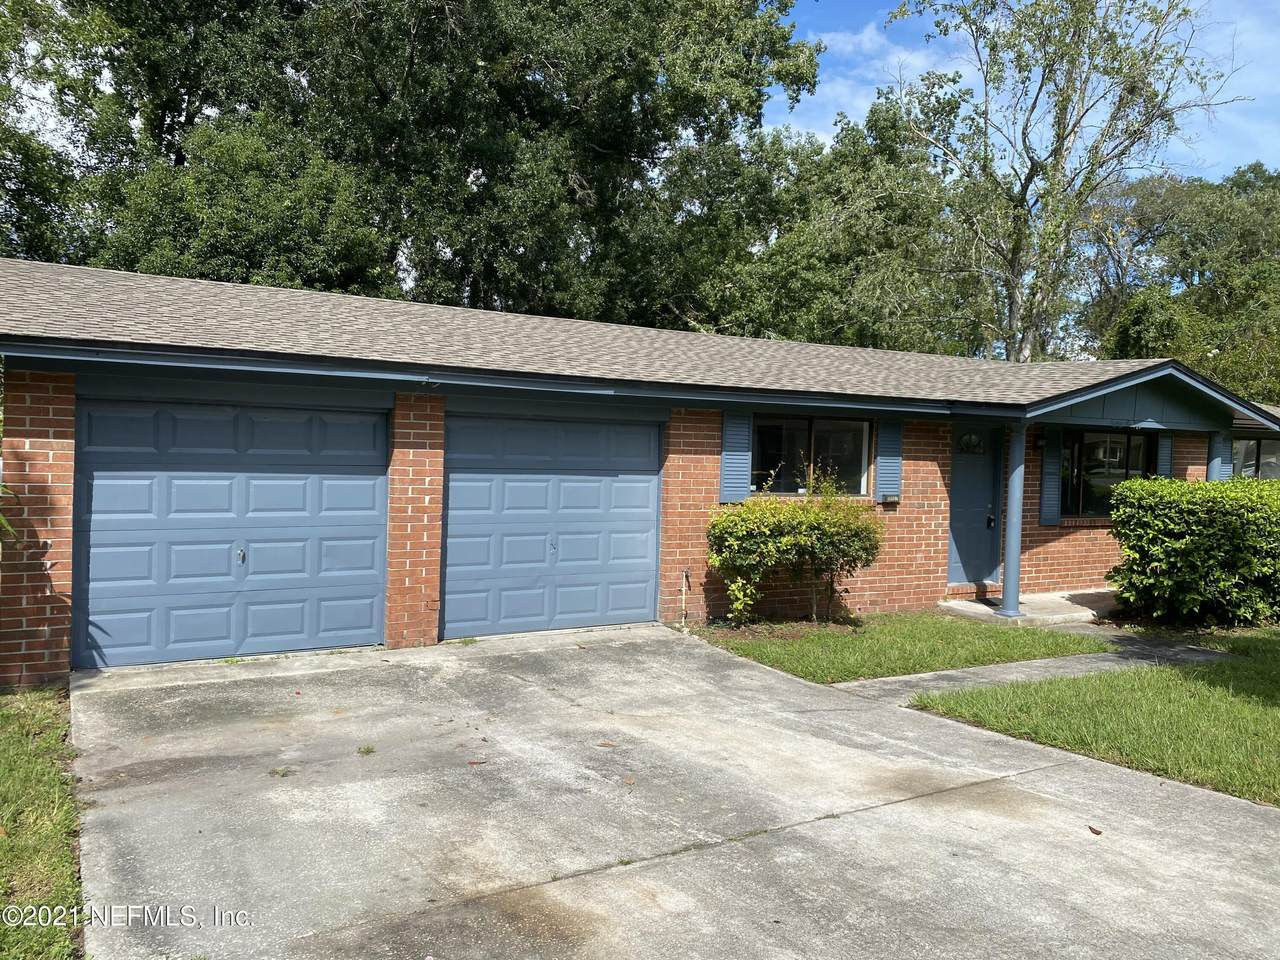 8657 Moss Haven Rd - Photo 1